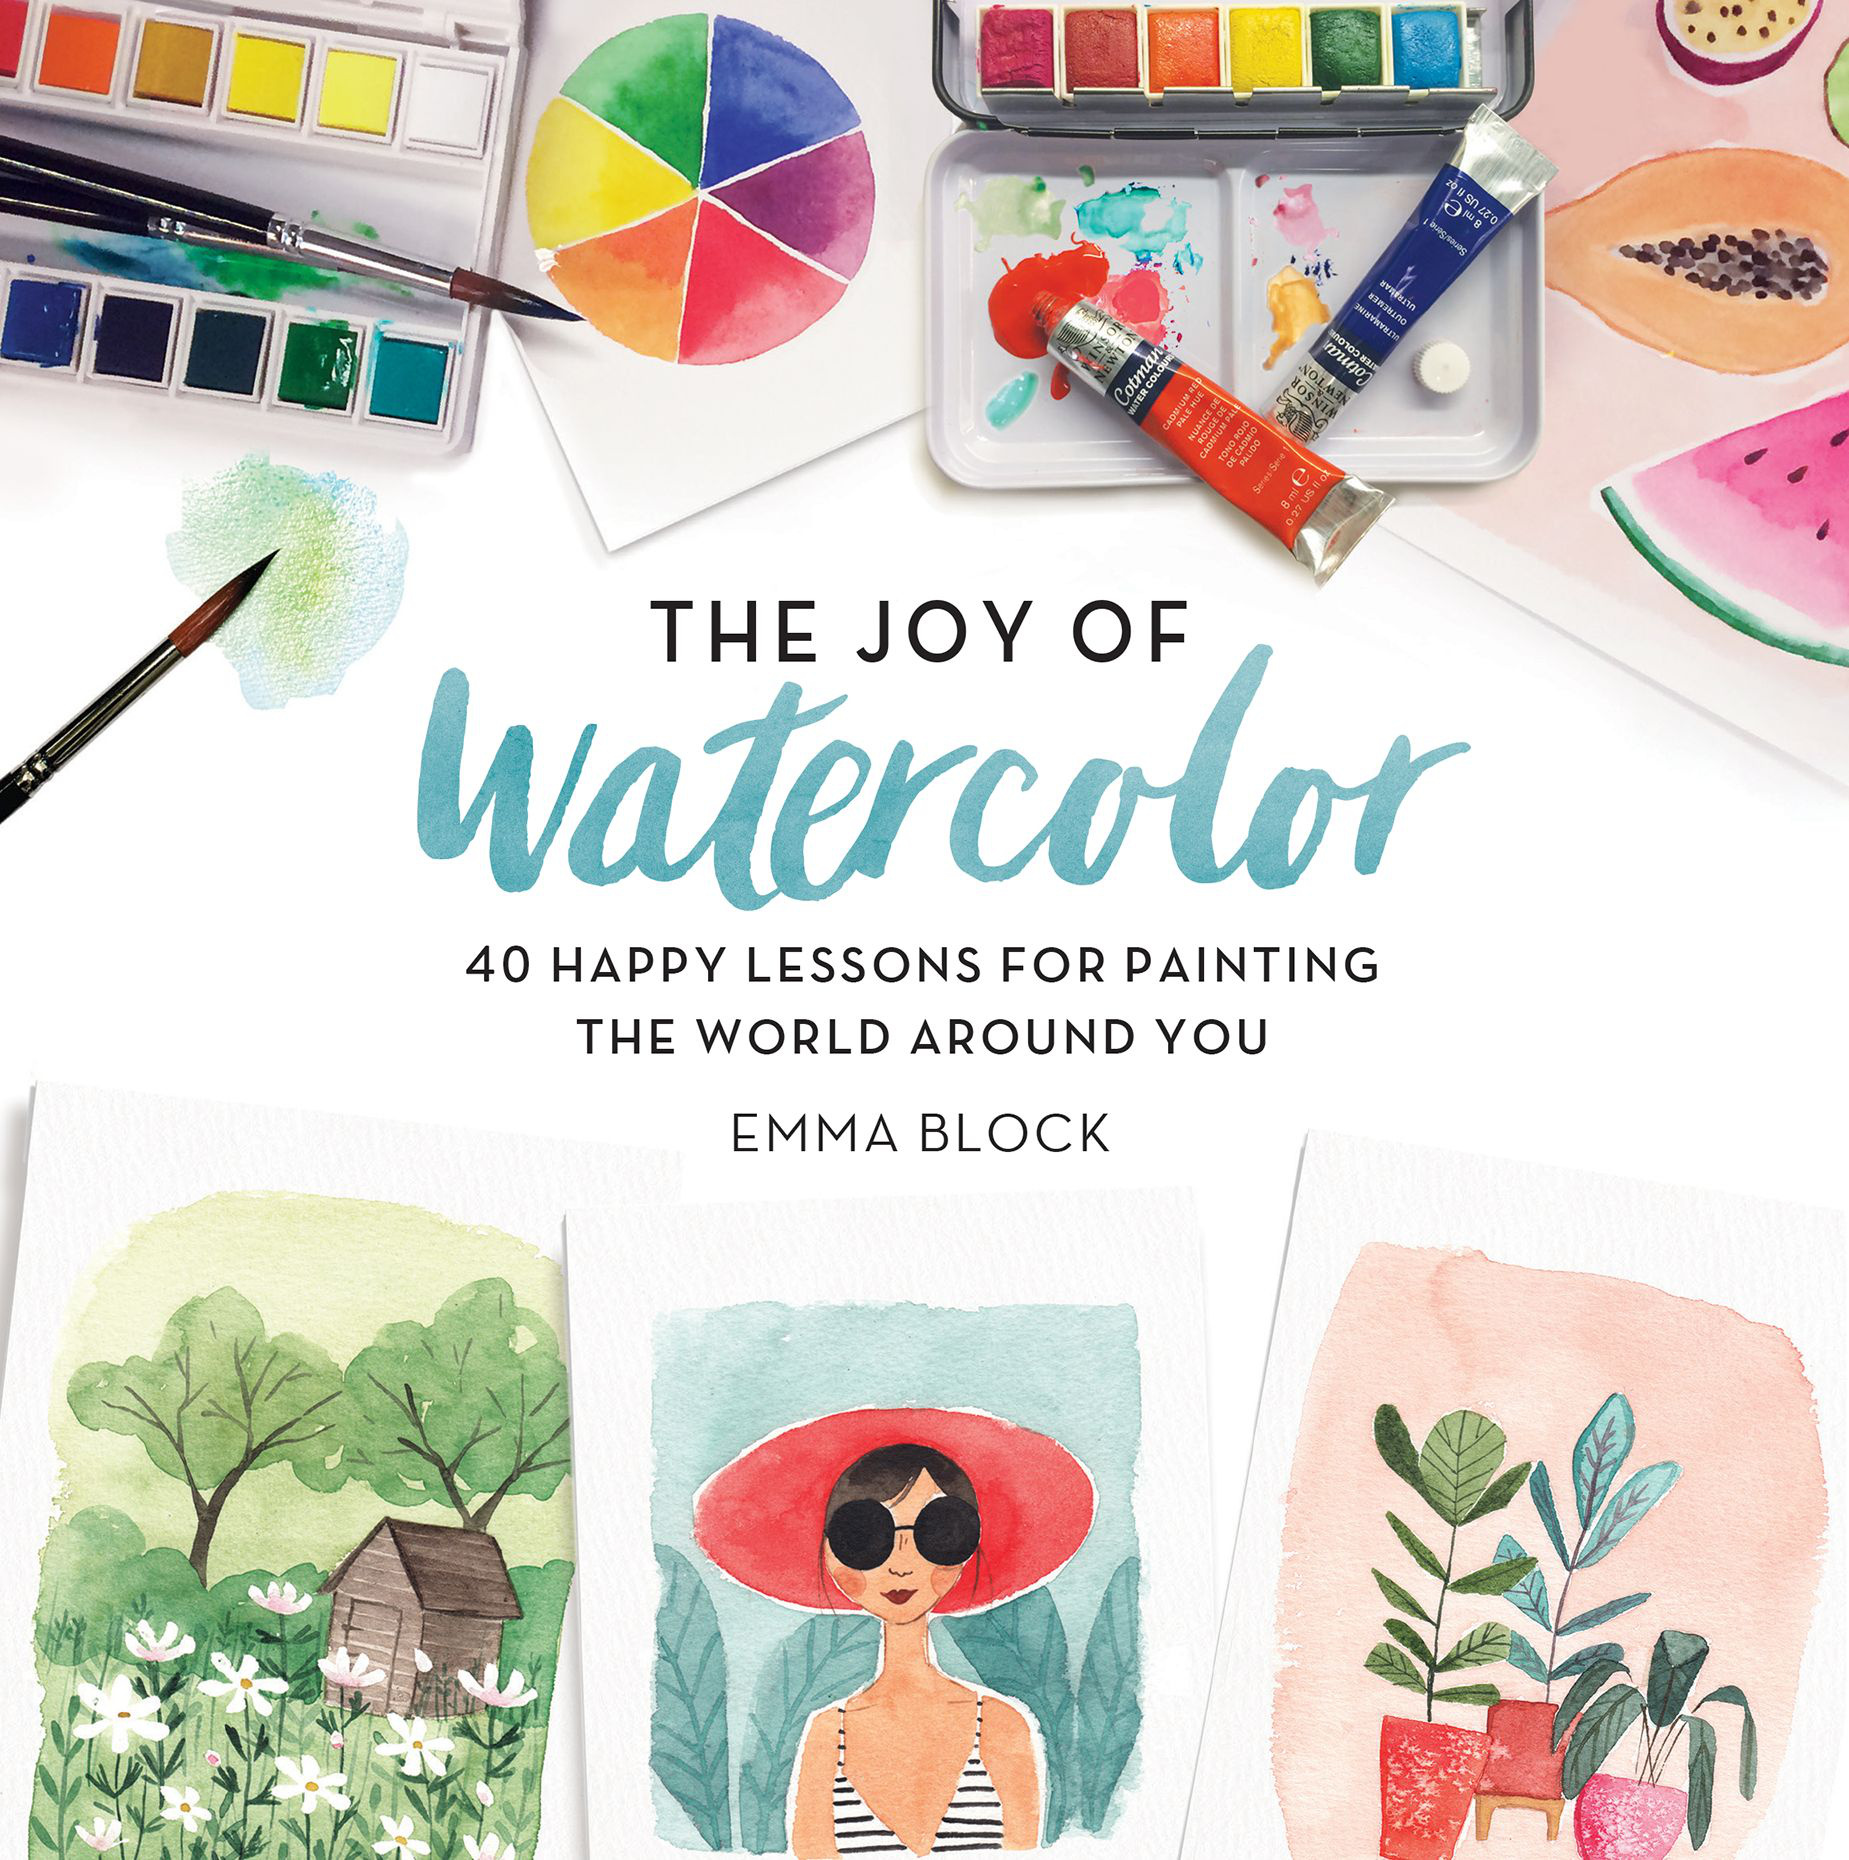 The Joy of Watercolor: 40 Happy Lessons for Painting the World Around You by Emma Block, ISBN: 9780762463299